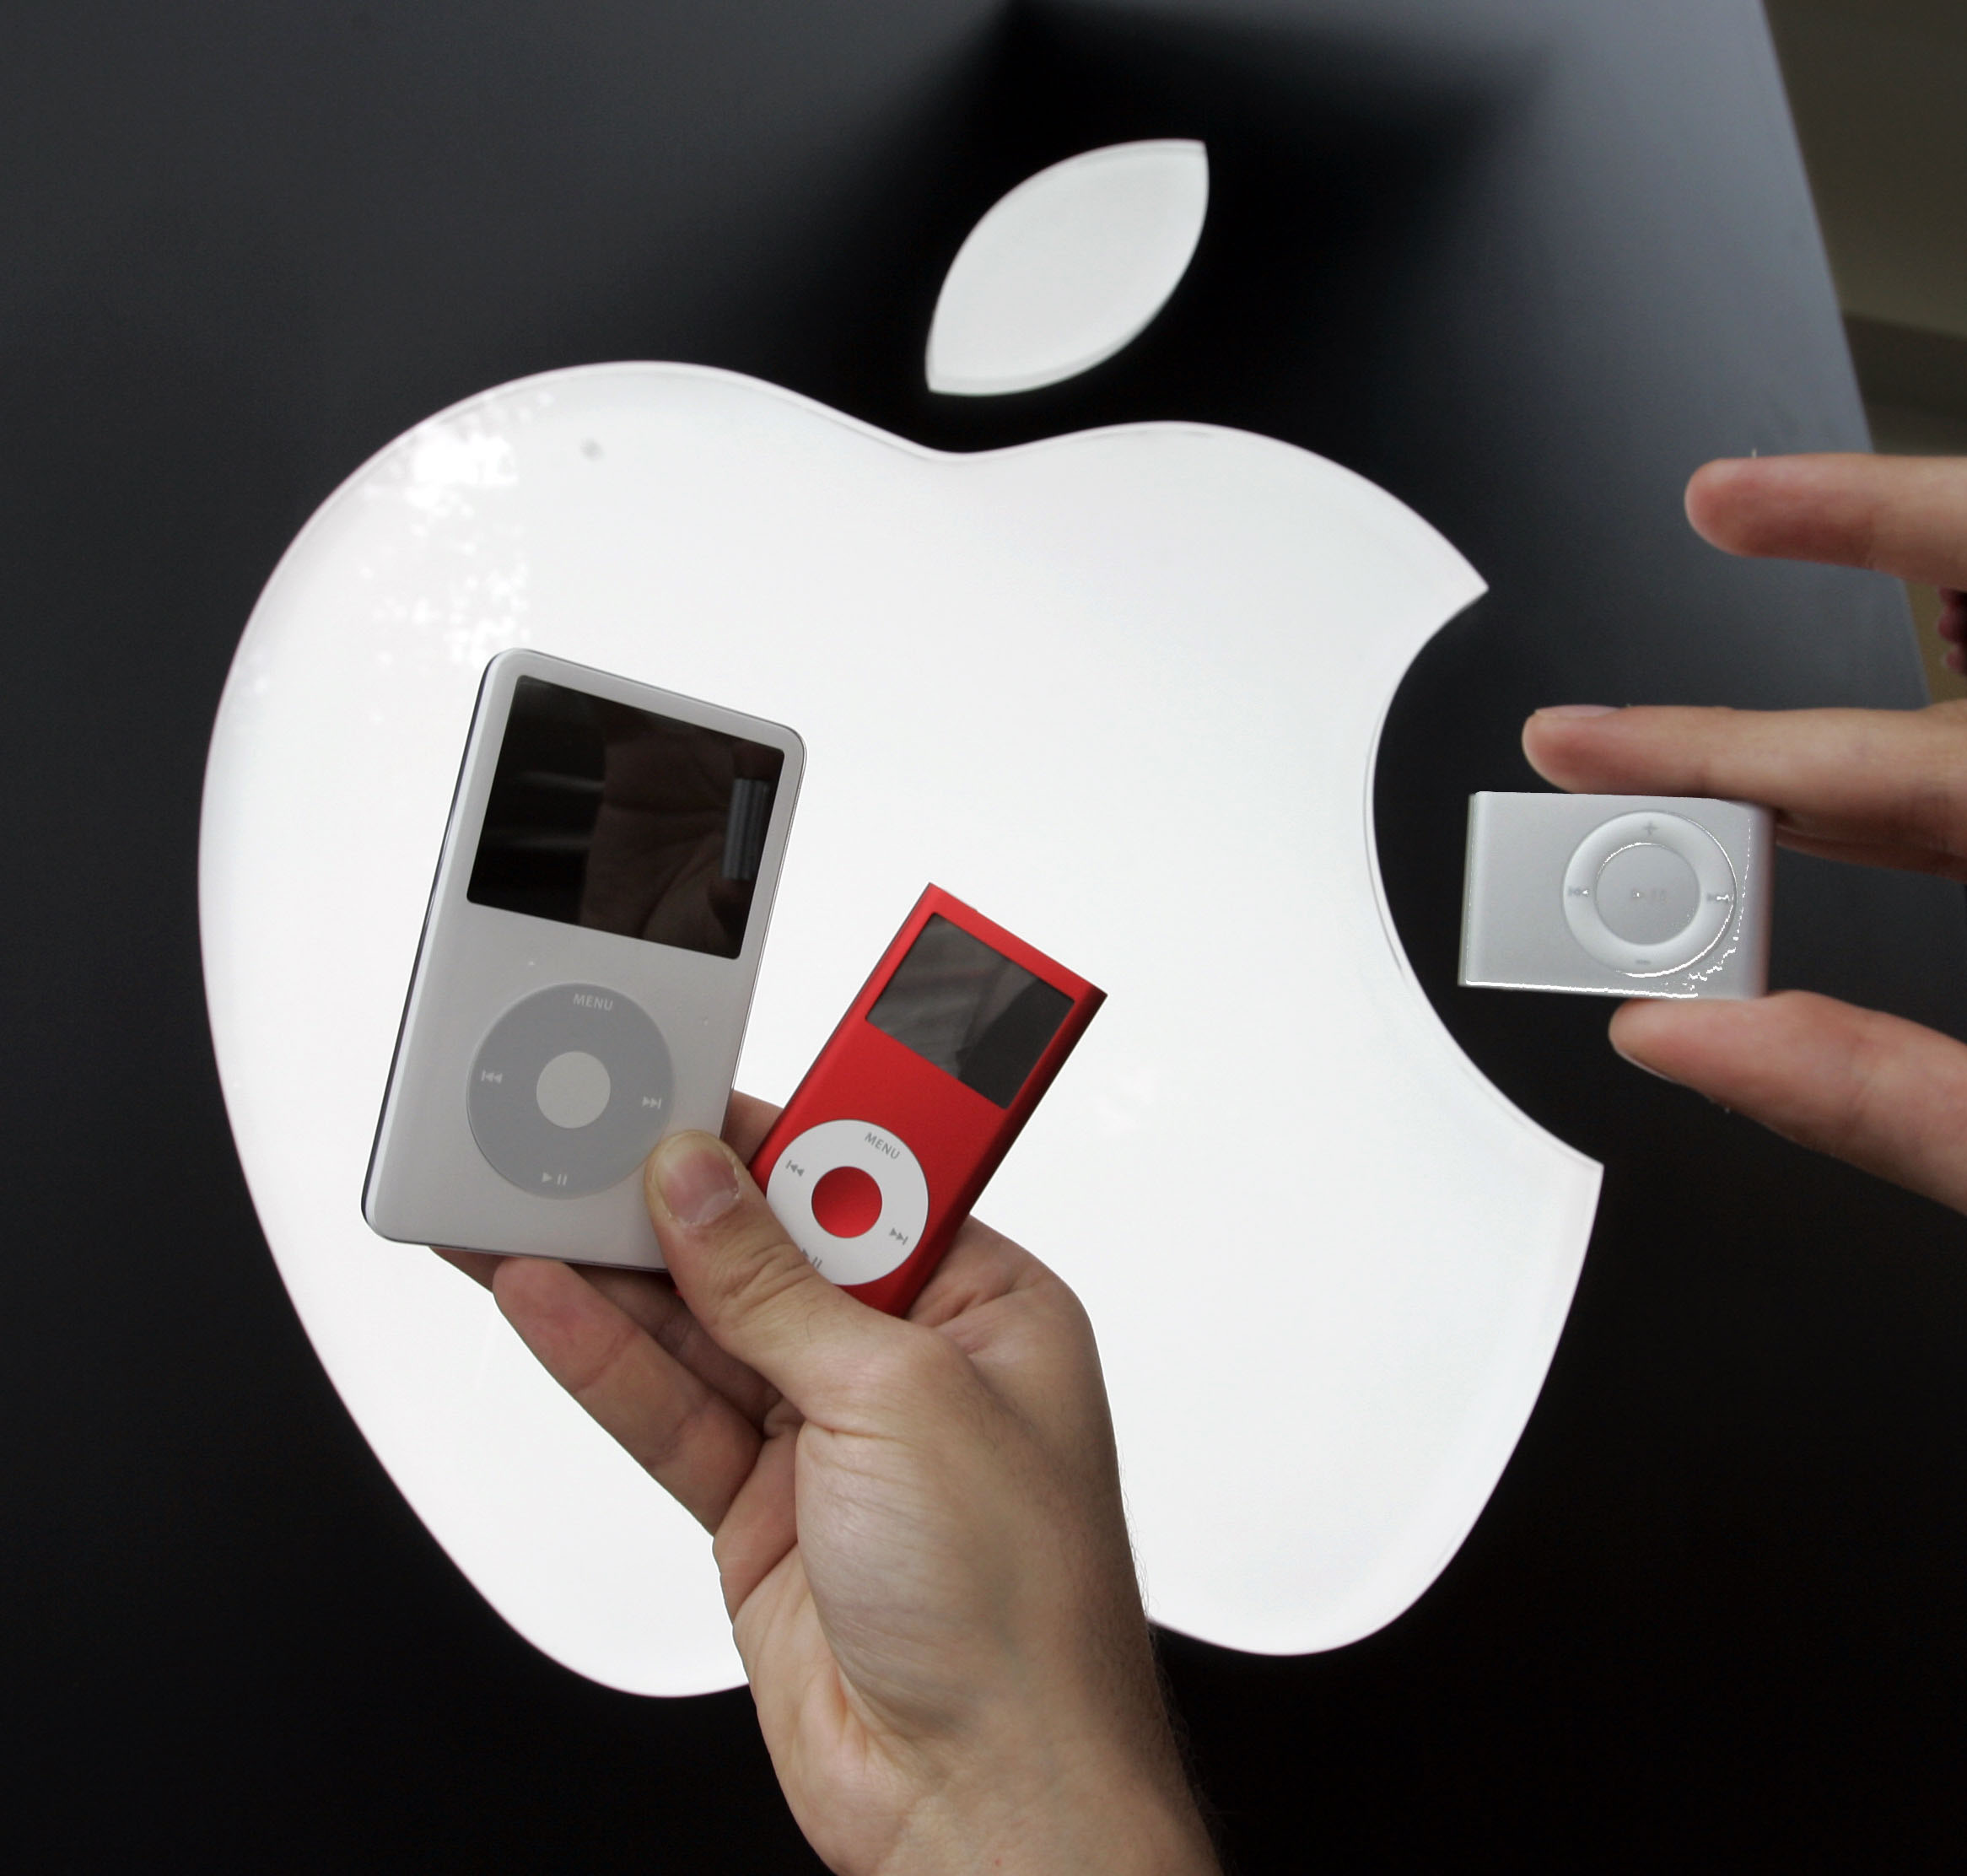 <div class='meta'><div class='origin-logo' data-origin='AP'></div><span class='caption-text' data-credit='AP Photo/Paul Sakuma,File'>This Nov. 3, 2006 file photo shows the then new Apple iPod Shuffle, right, next to a Red iPod Nano, center, and 60GB iPod, left, at an Apple store in Palo Alto, Calif.</span></div>